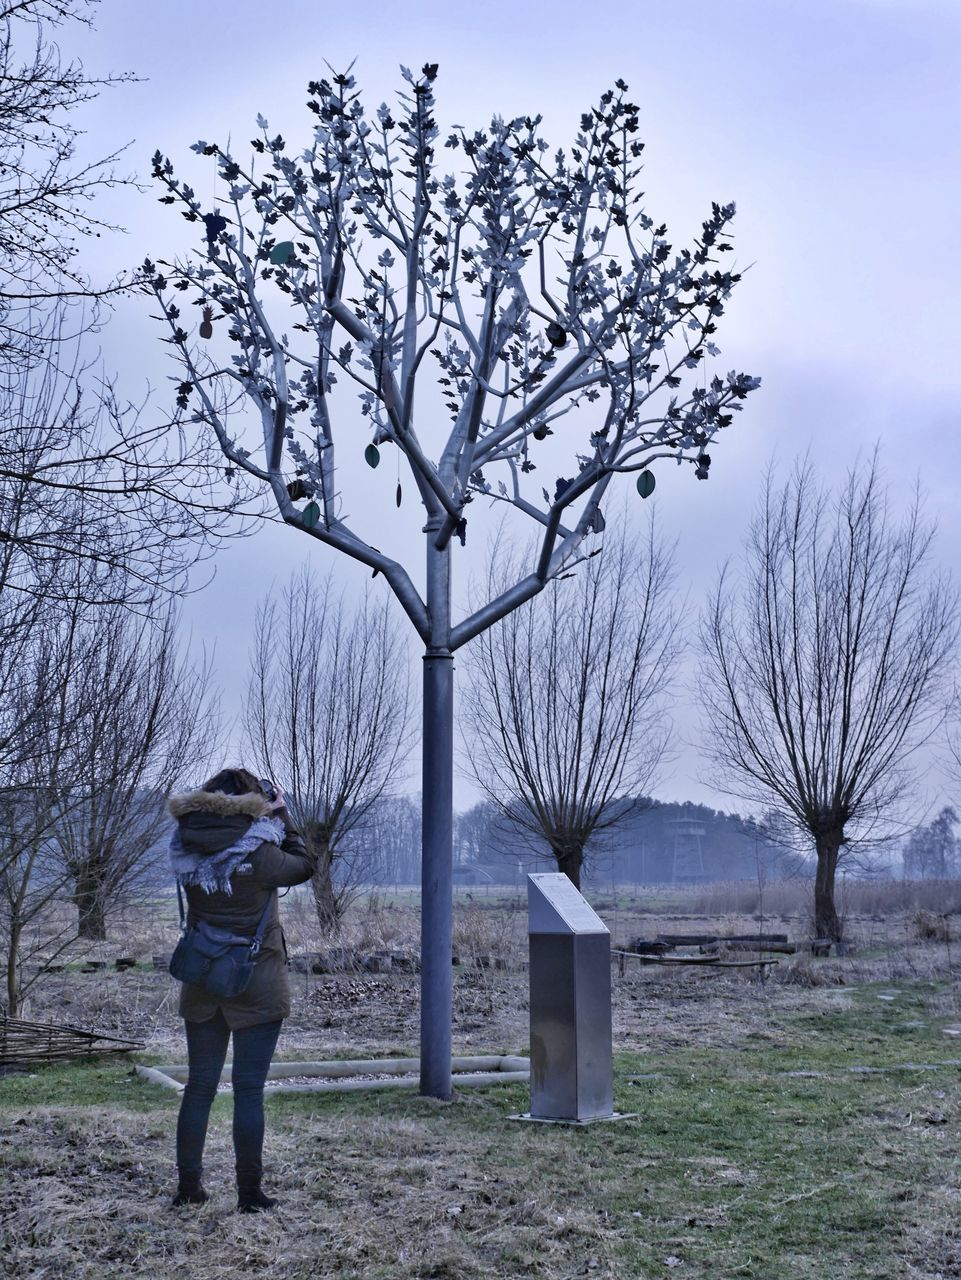 tree, bare tree, one person, real people, rear view, full length, field, branch, standing, casual clothing, leisure activity, tree trunk, day, outdoors, nature, lifestyles, sky, beauty in nature, people